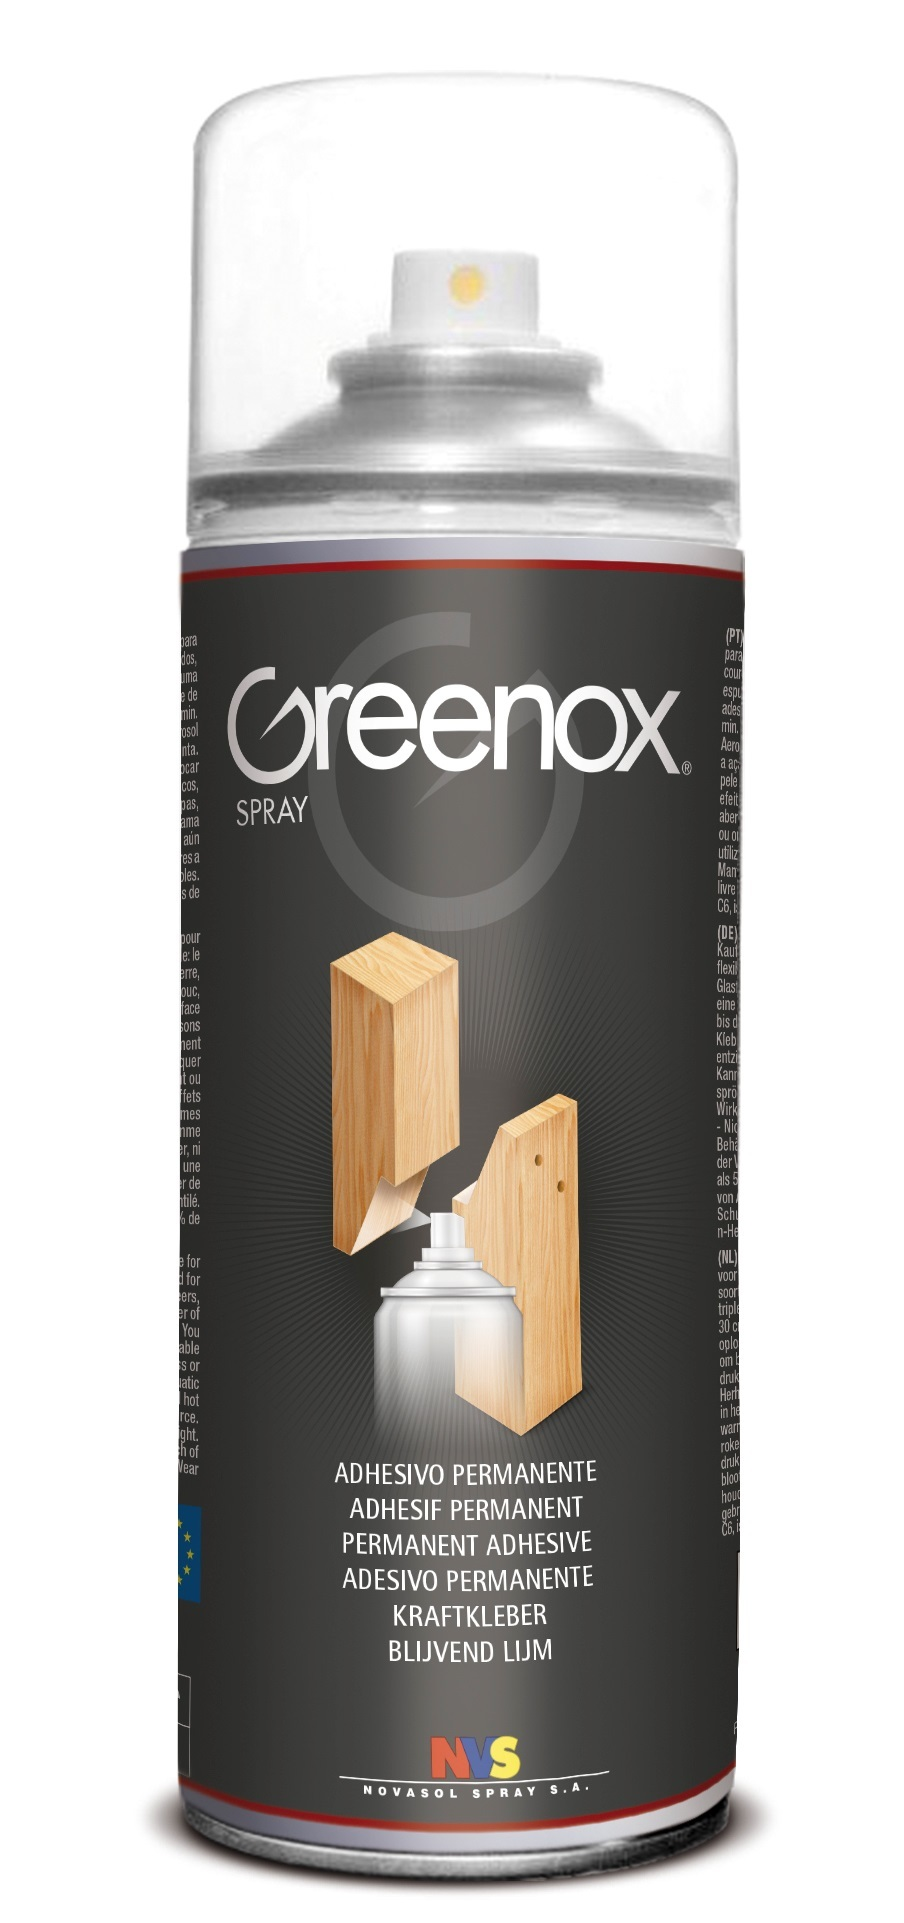 Novasol Spray - Greenox - Permanent Adhesive Spray - 400ml